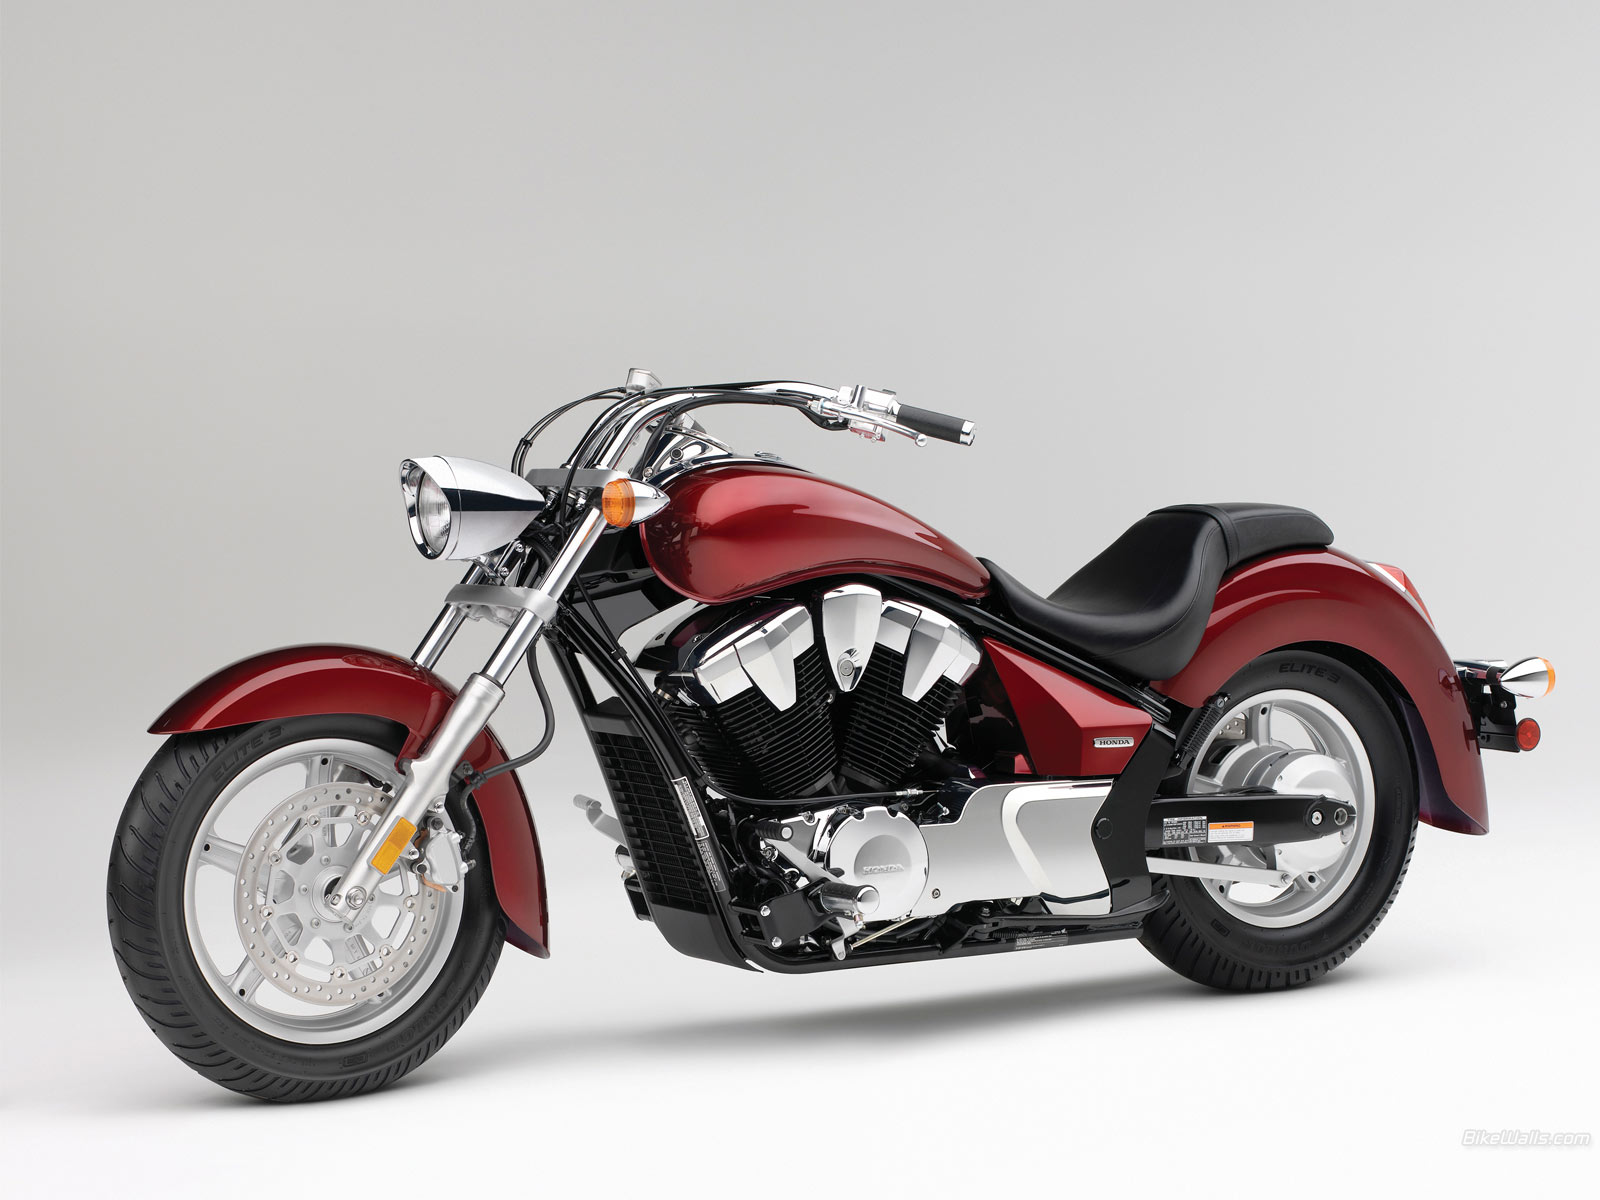 Neredine Harley Davidson Latest Hd Wallpapers Free Download Photos